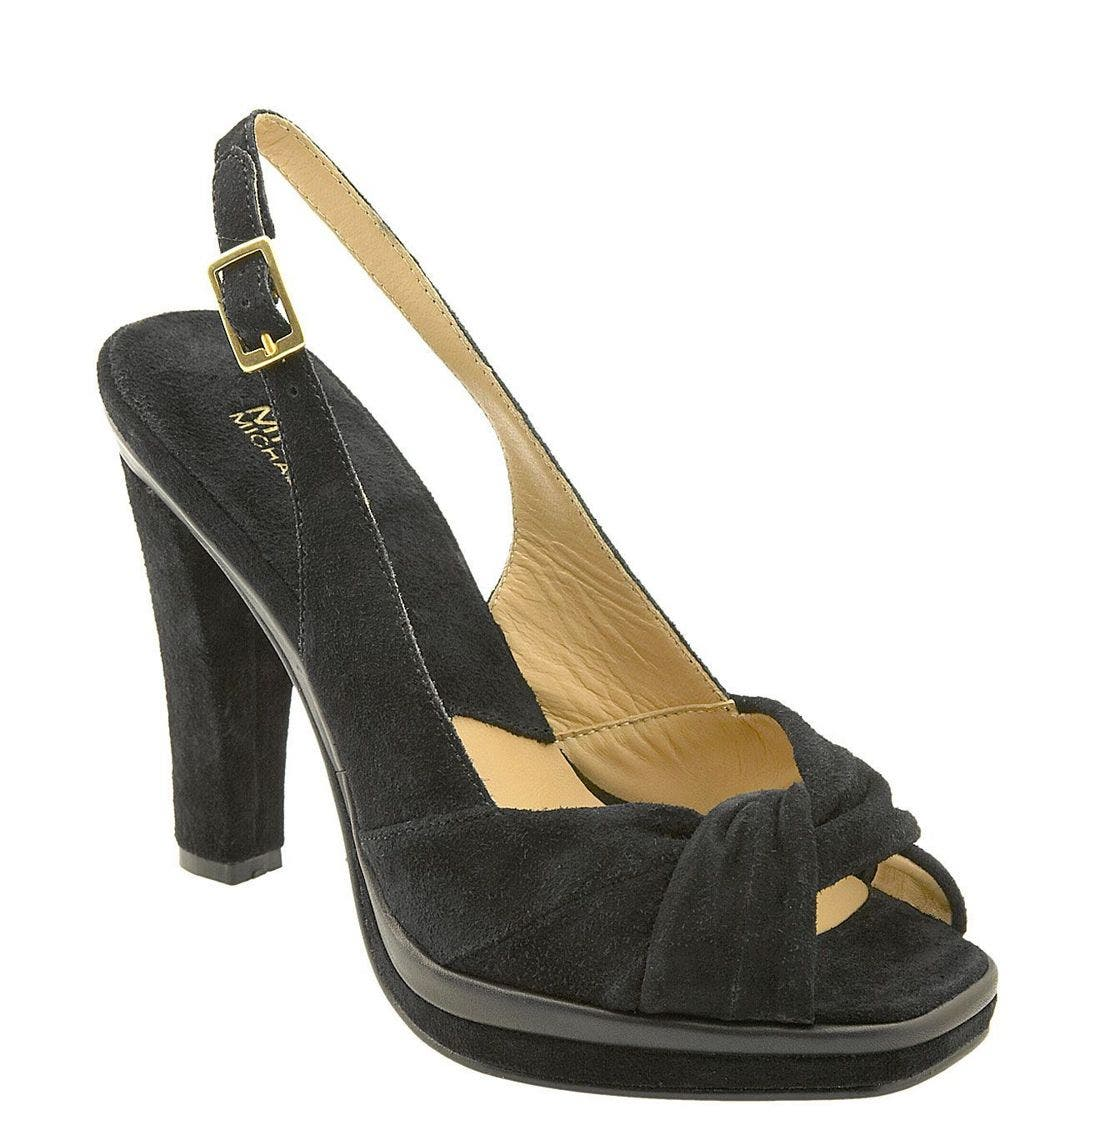 Alternate Image 1 Selected - MICHAEL Michael Kors 'Raceway' Platform Slingback